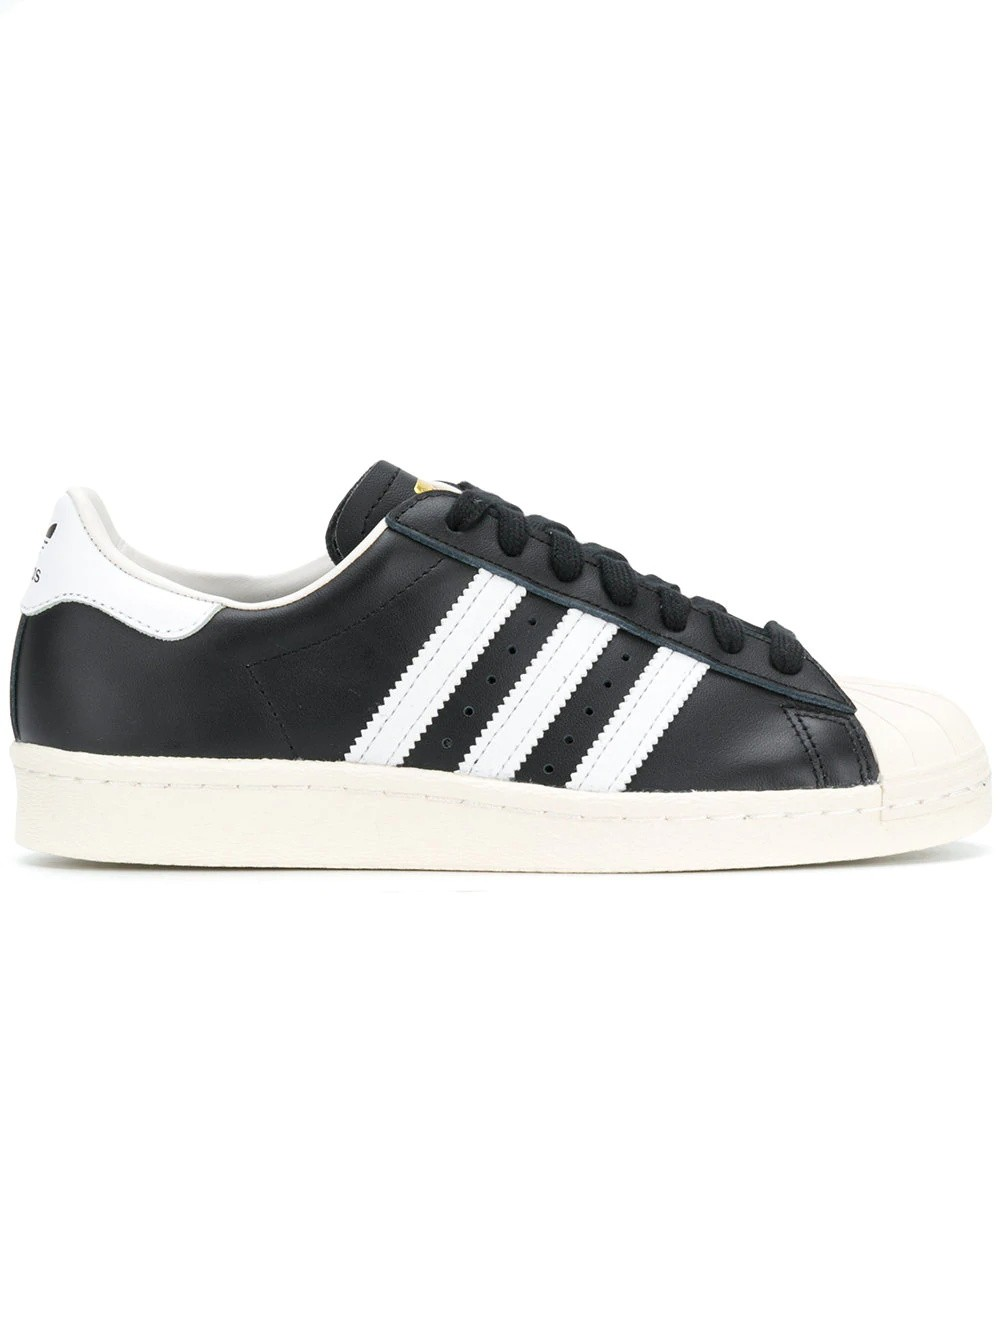 Adidas Originals Superstar 80s | Negras | Sneakers | G61069